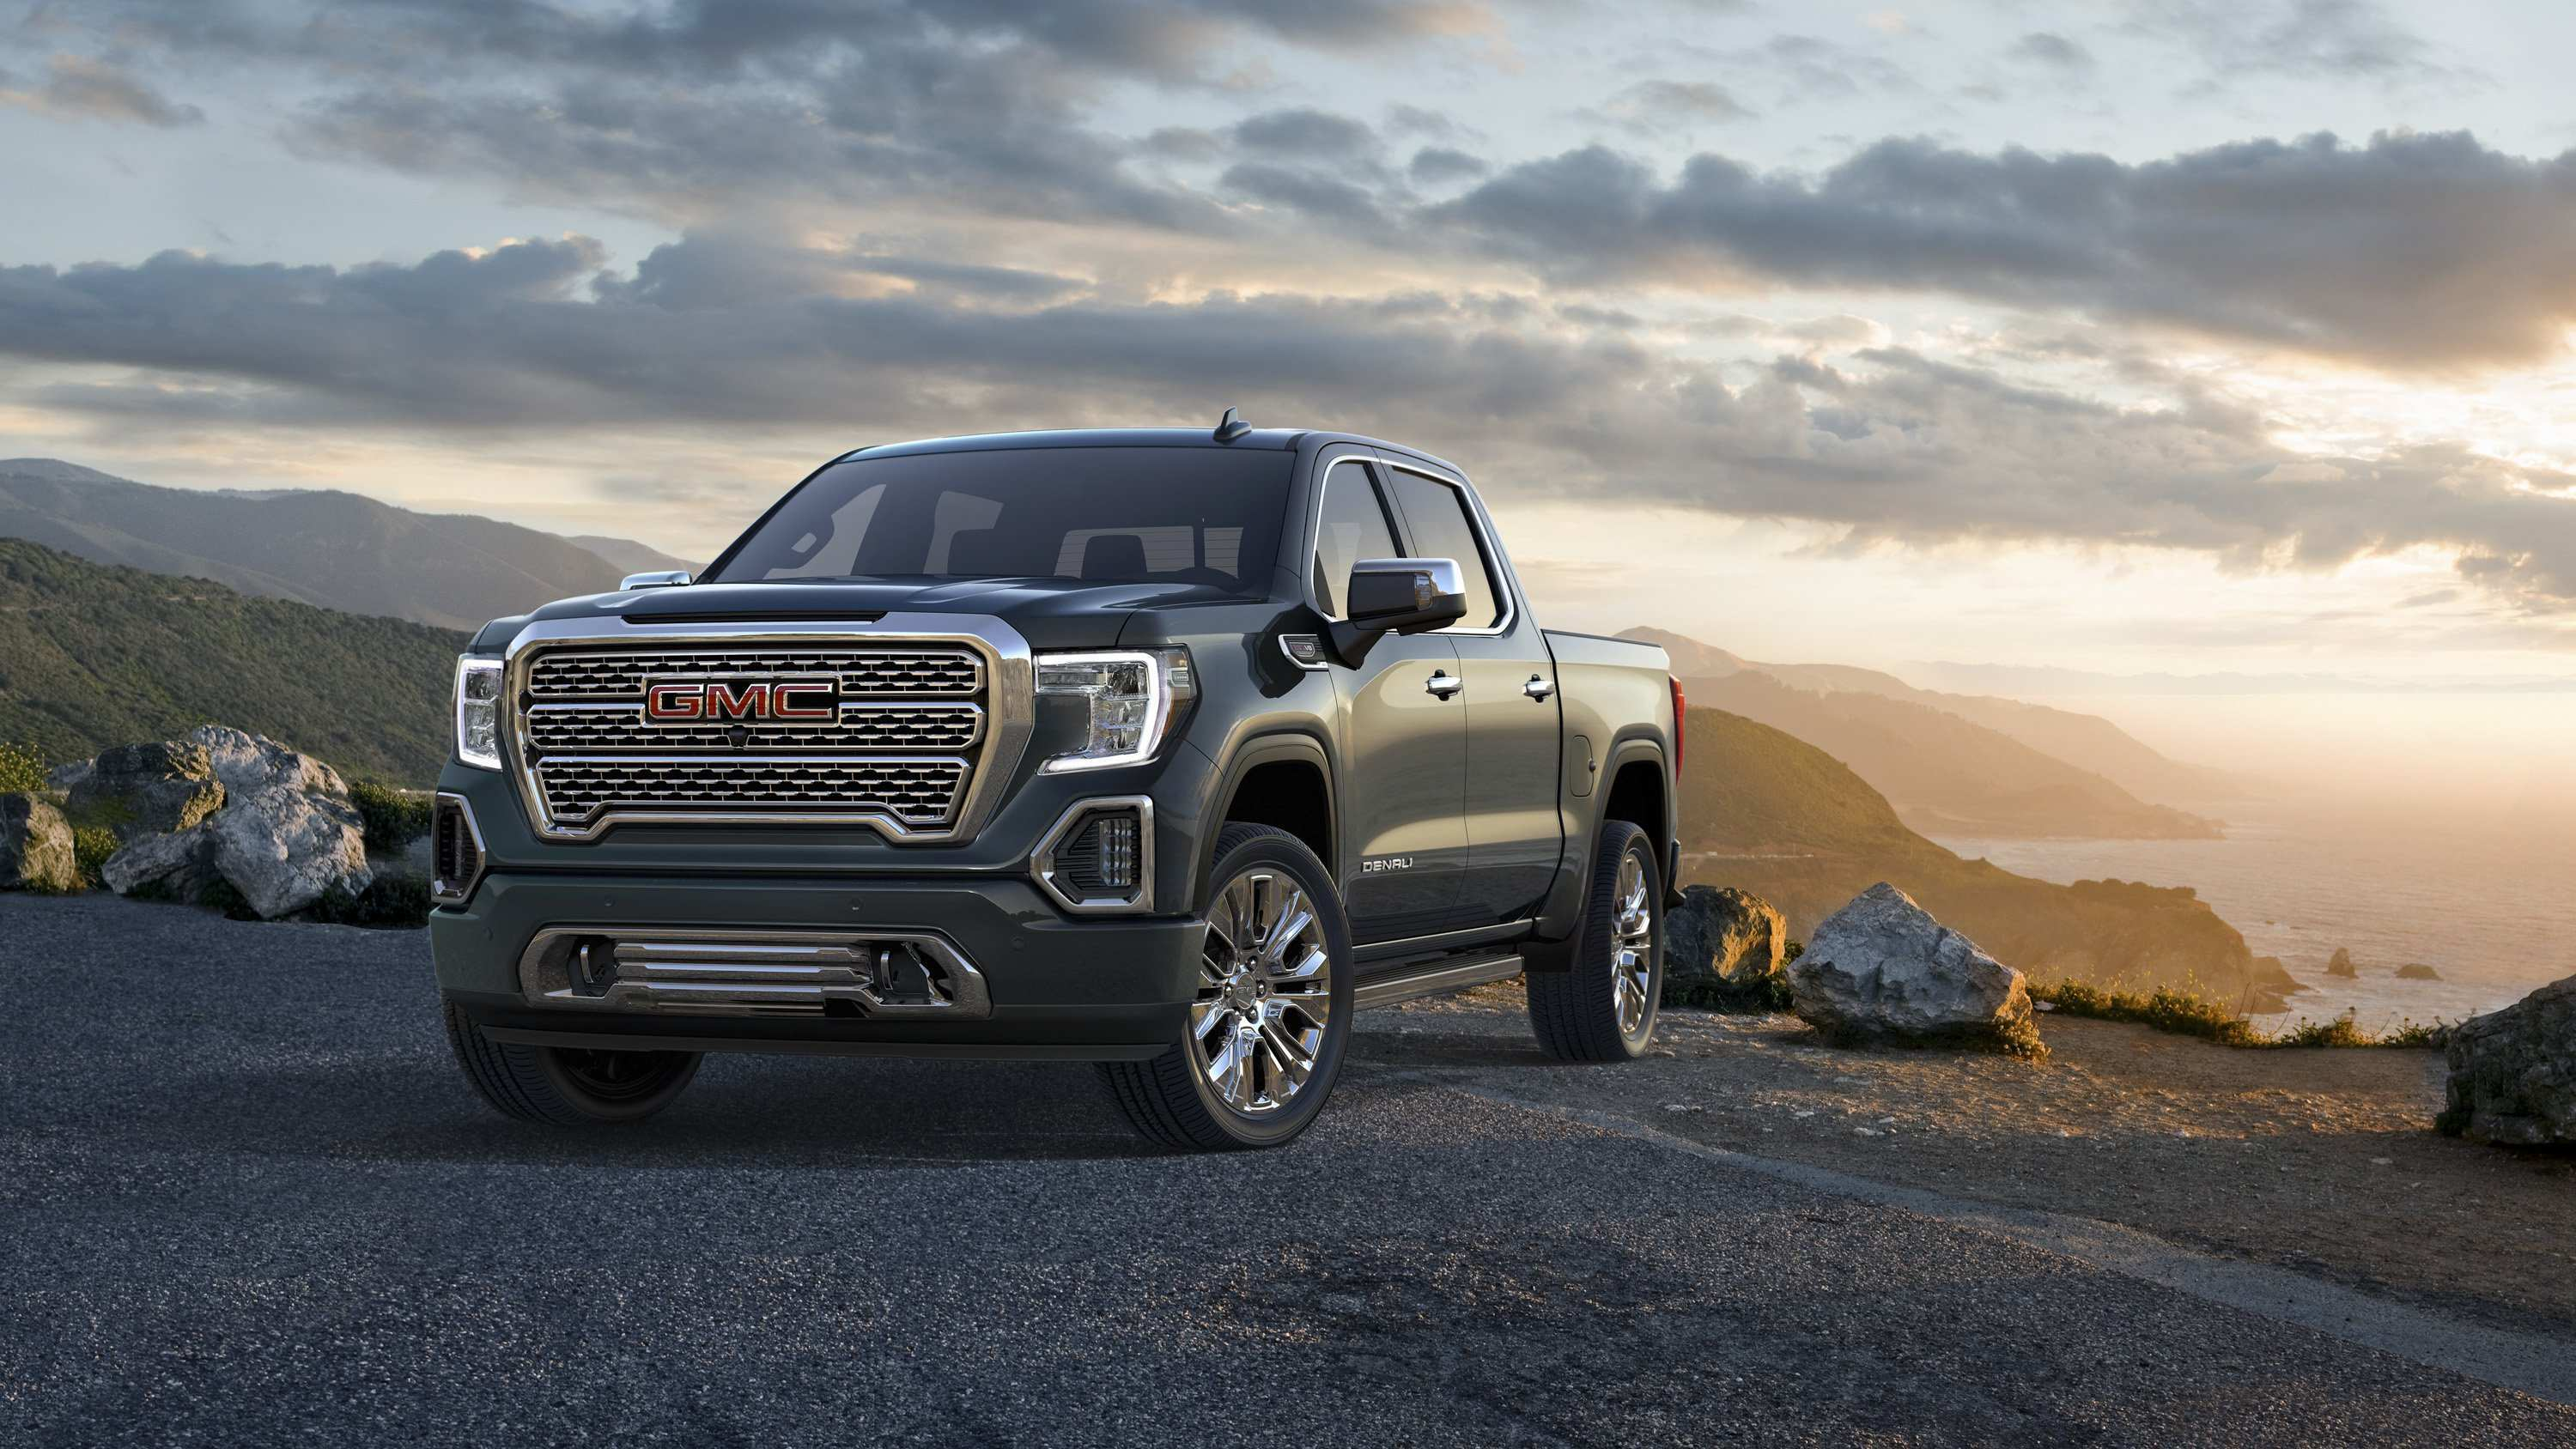 71 Best Review Gmc Wallpaper First Drive with Gmc Wallpaper